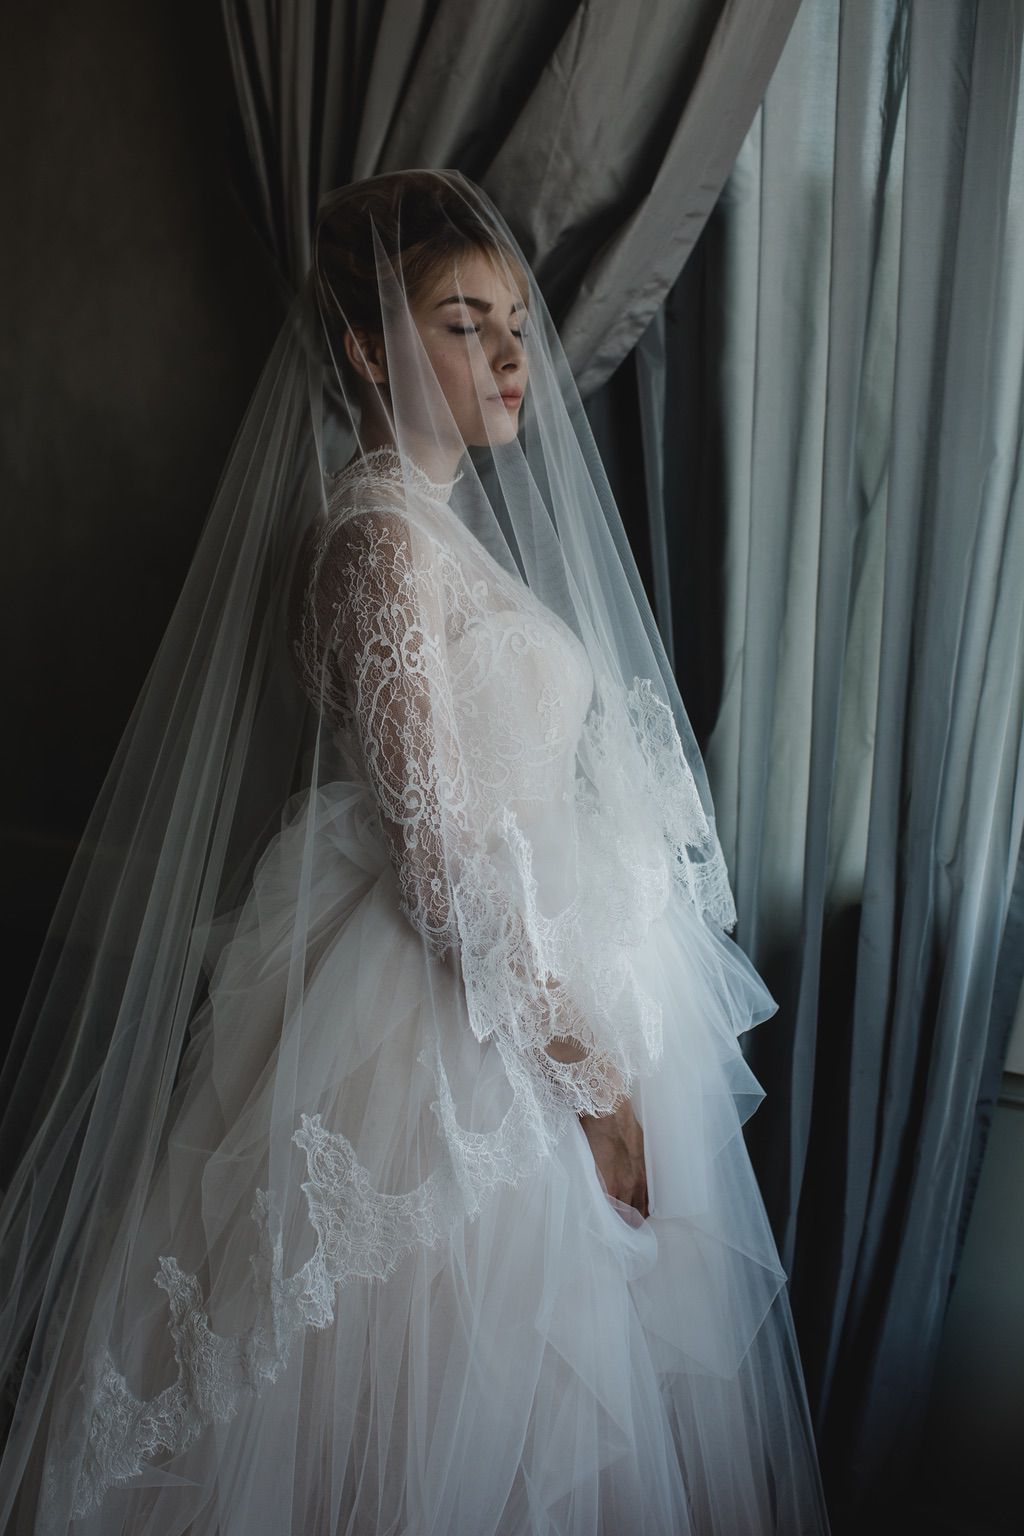 bridal tulle and lace ball gown wedding dress long lace veil in Firenze